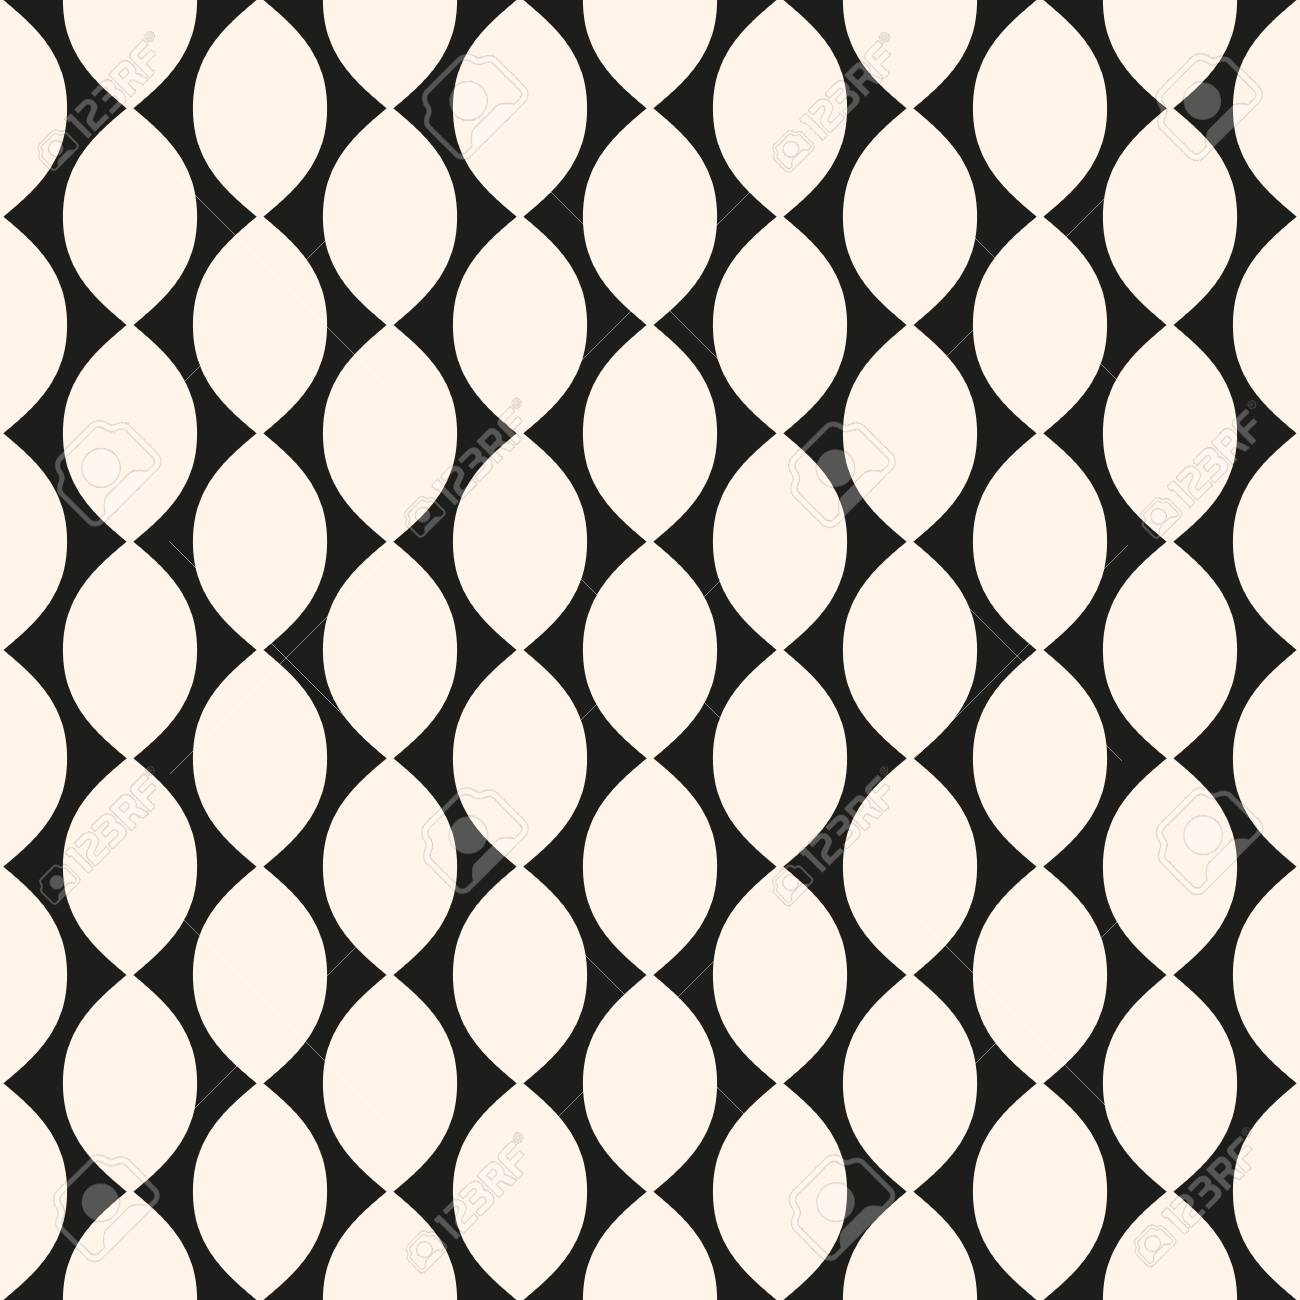 vector geometric seamless pattern with ovate shapes curved lines rh 123rf com art deco gatsby pattern vector gold art deco pattern vector